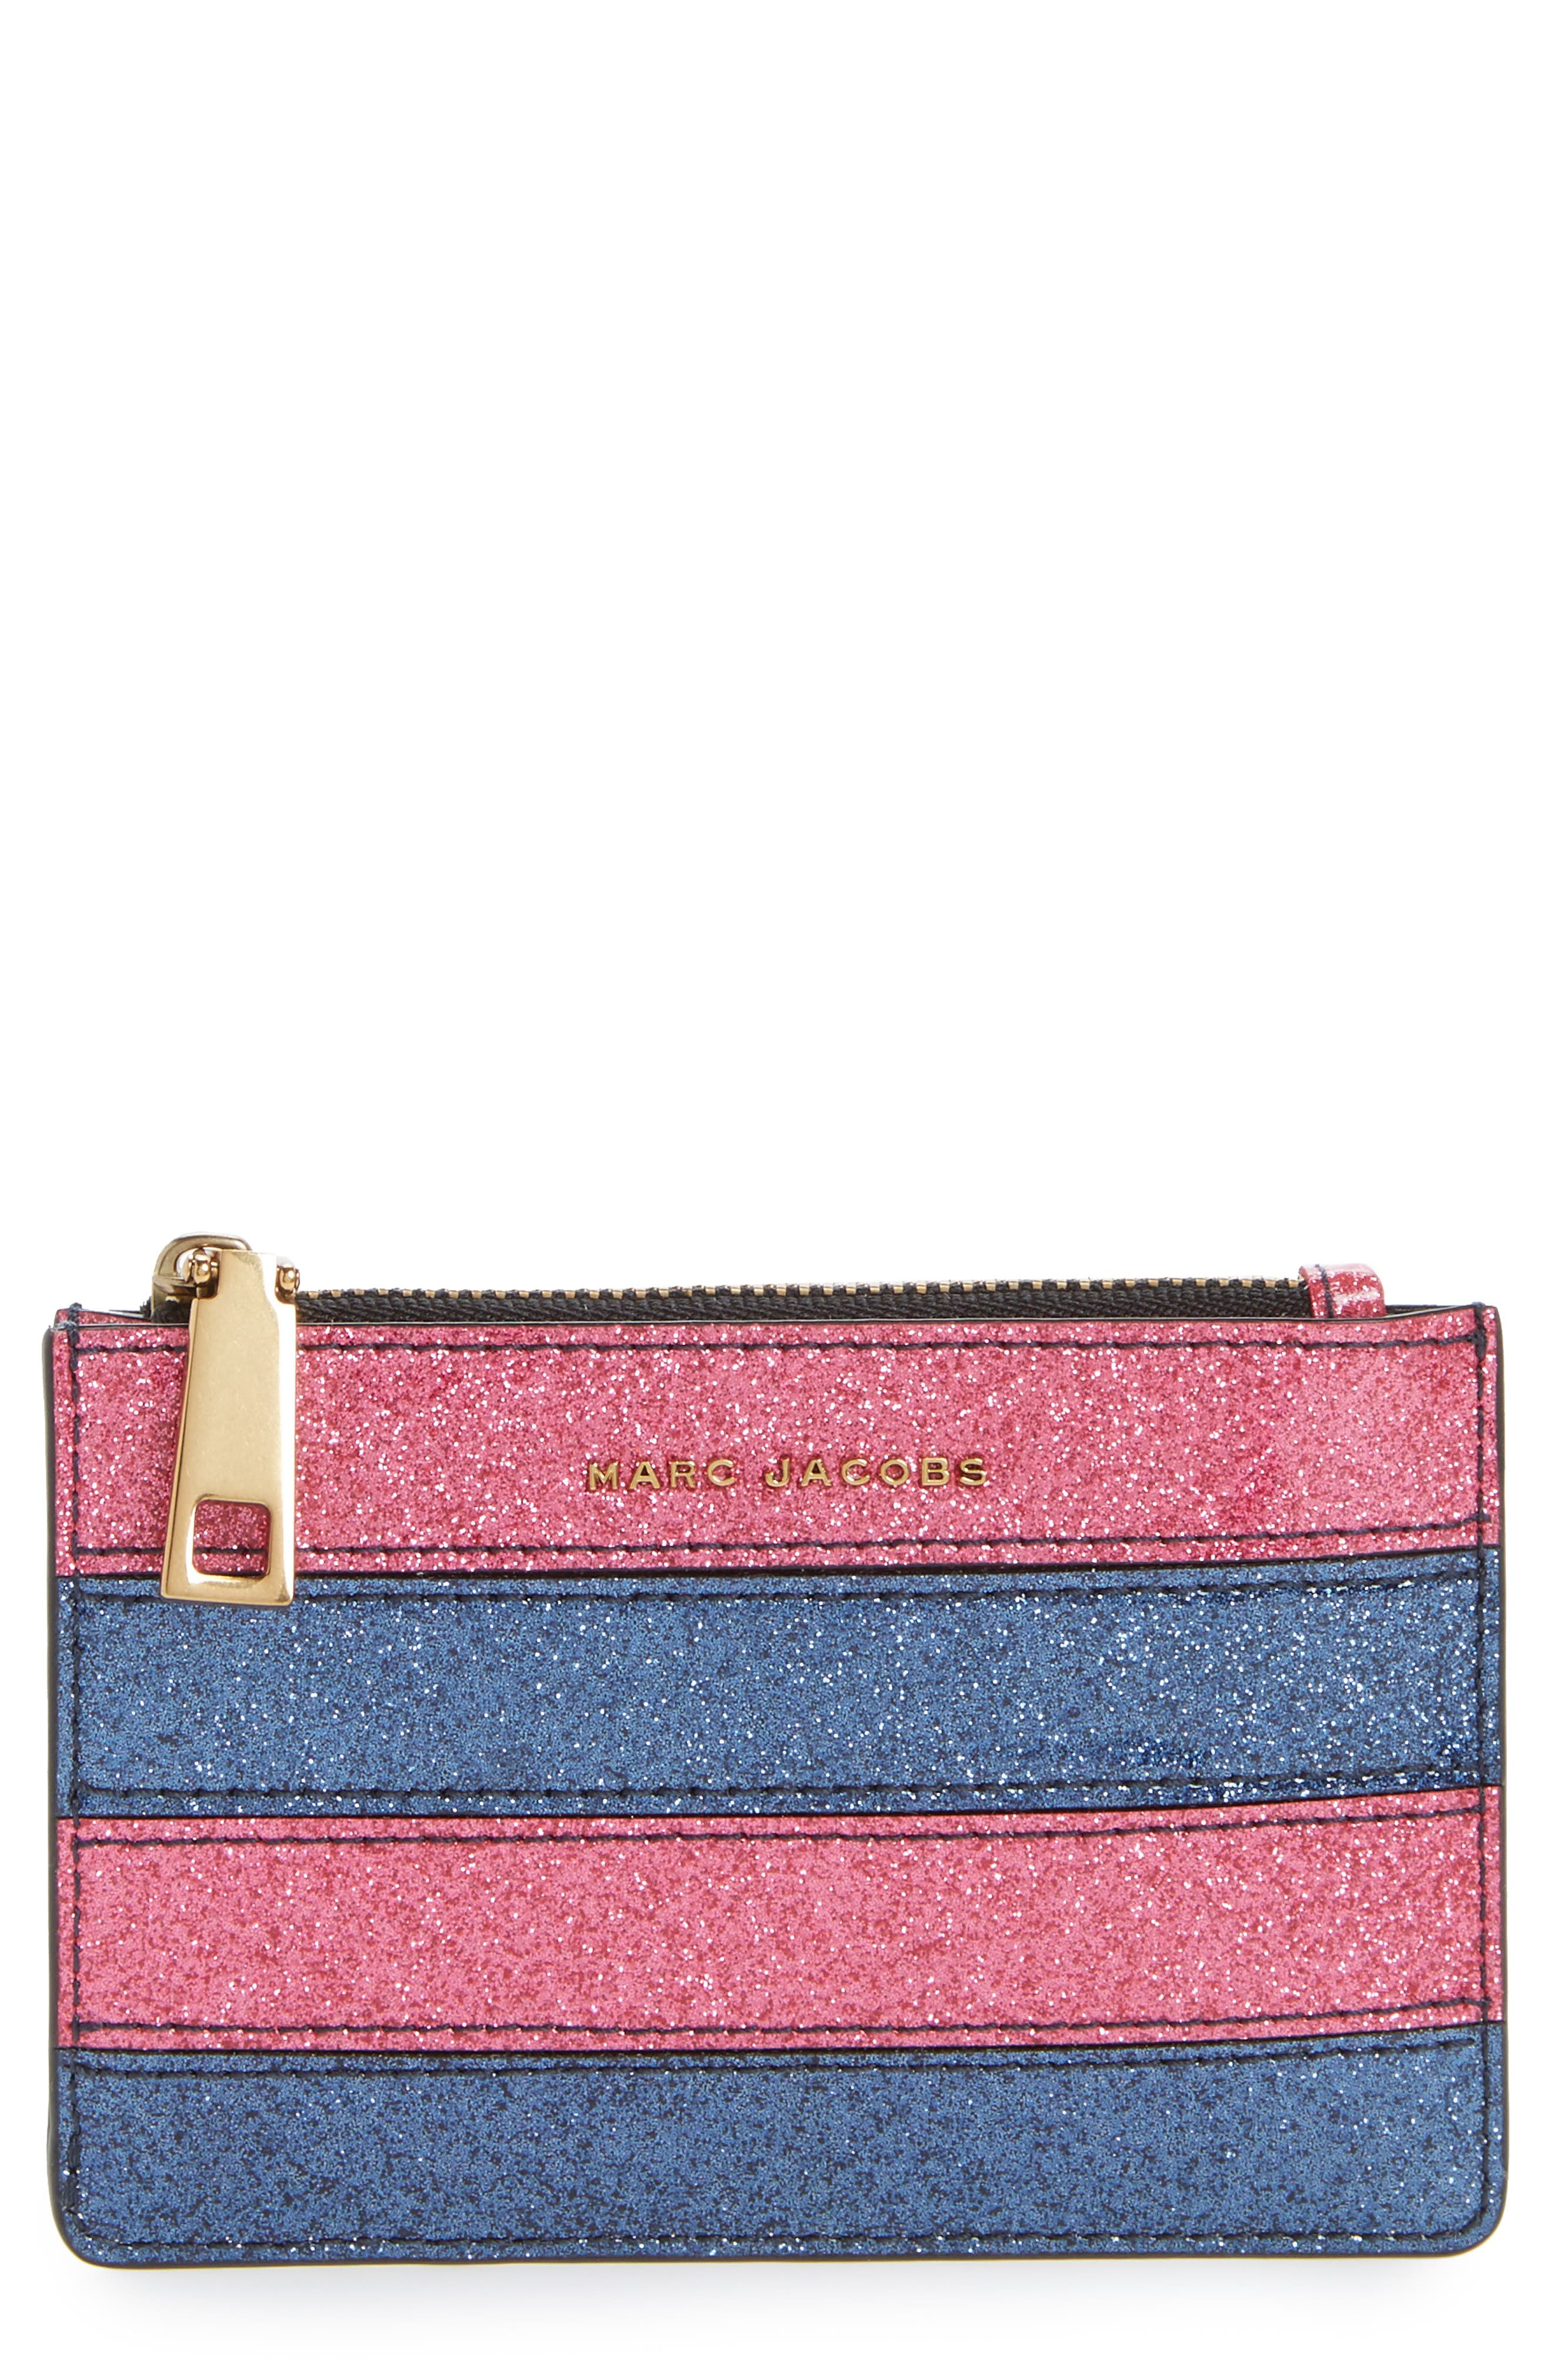 Main Image - MARC JACOBS Glitter Stripe Leather Wallet